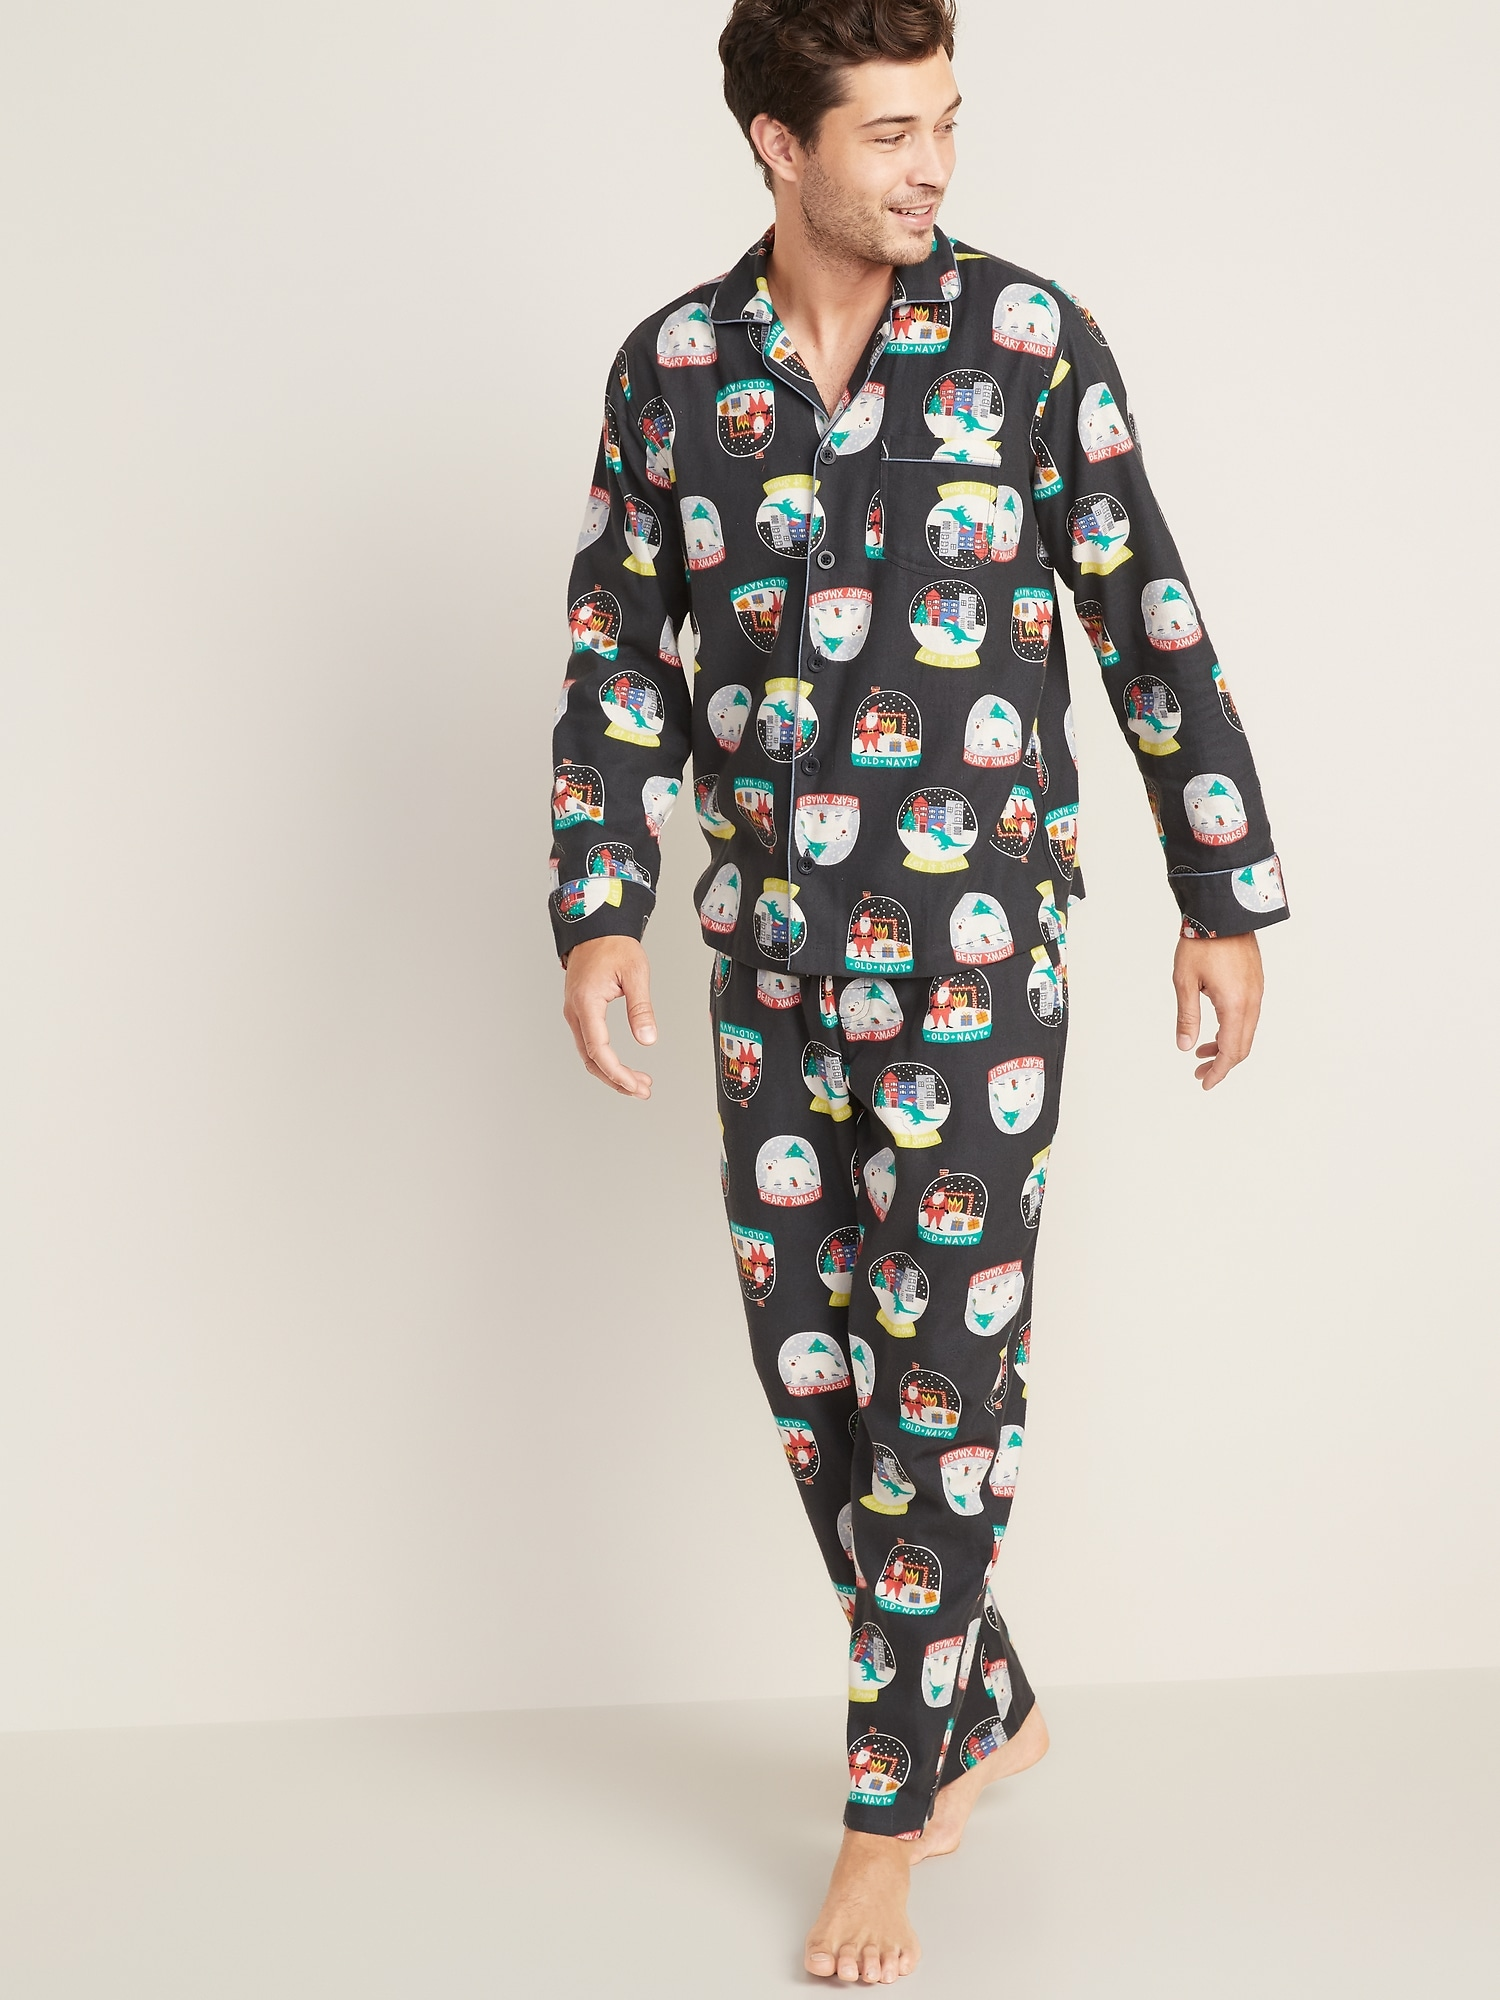 Patterned Flannel PJs for Men